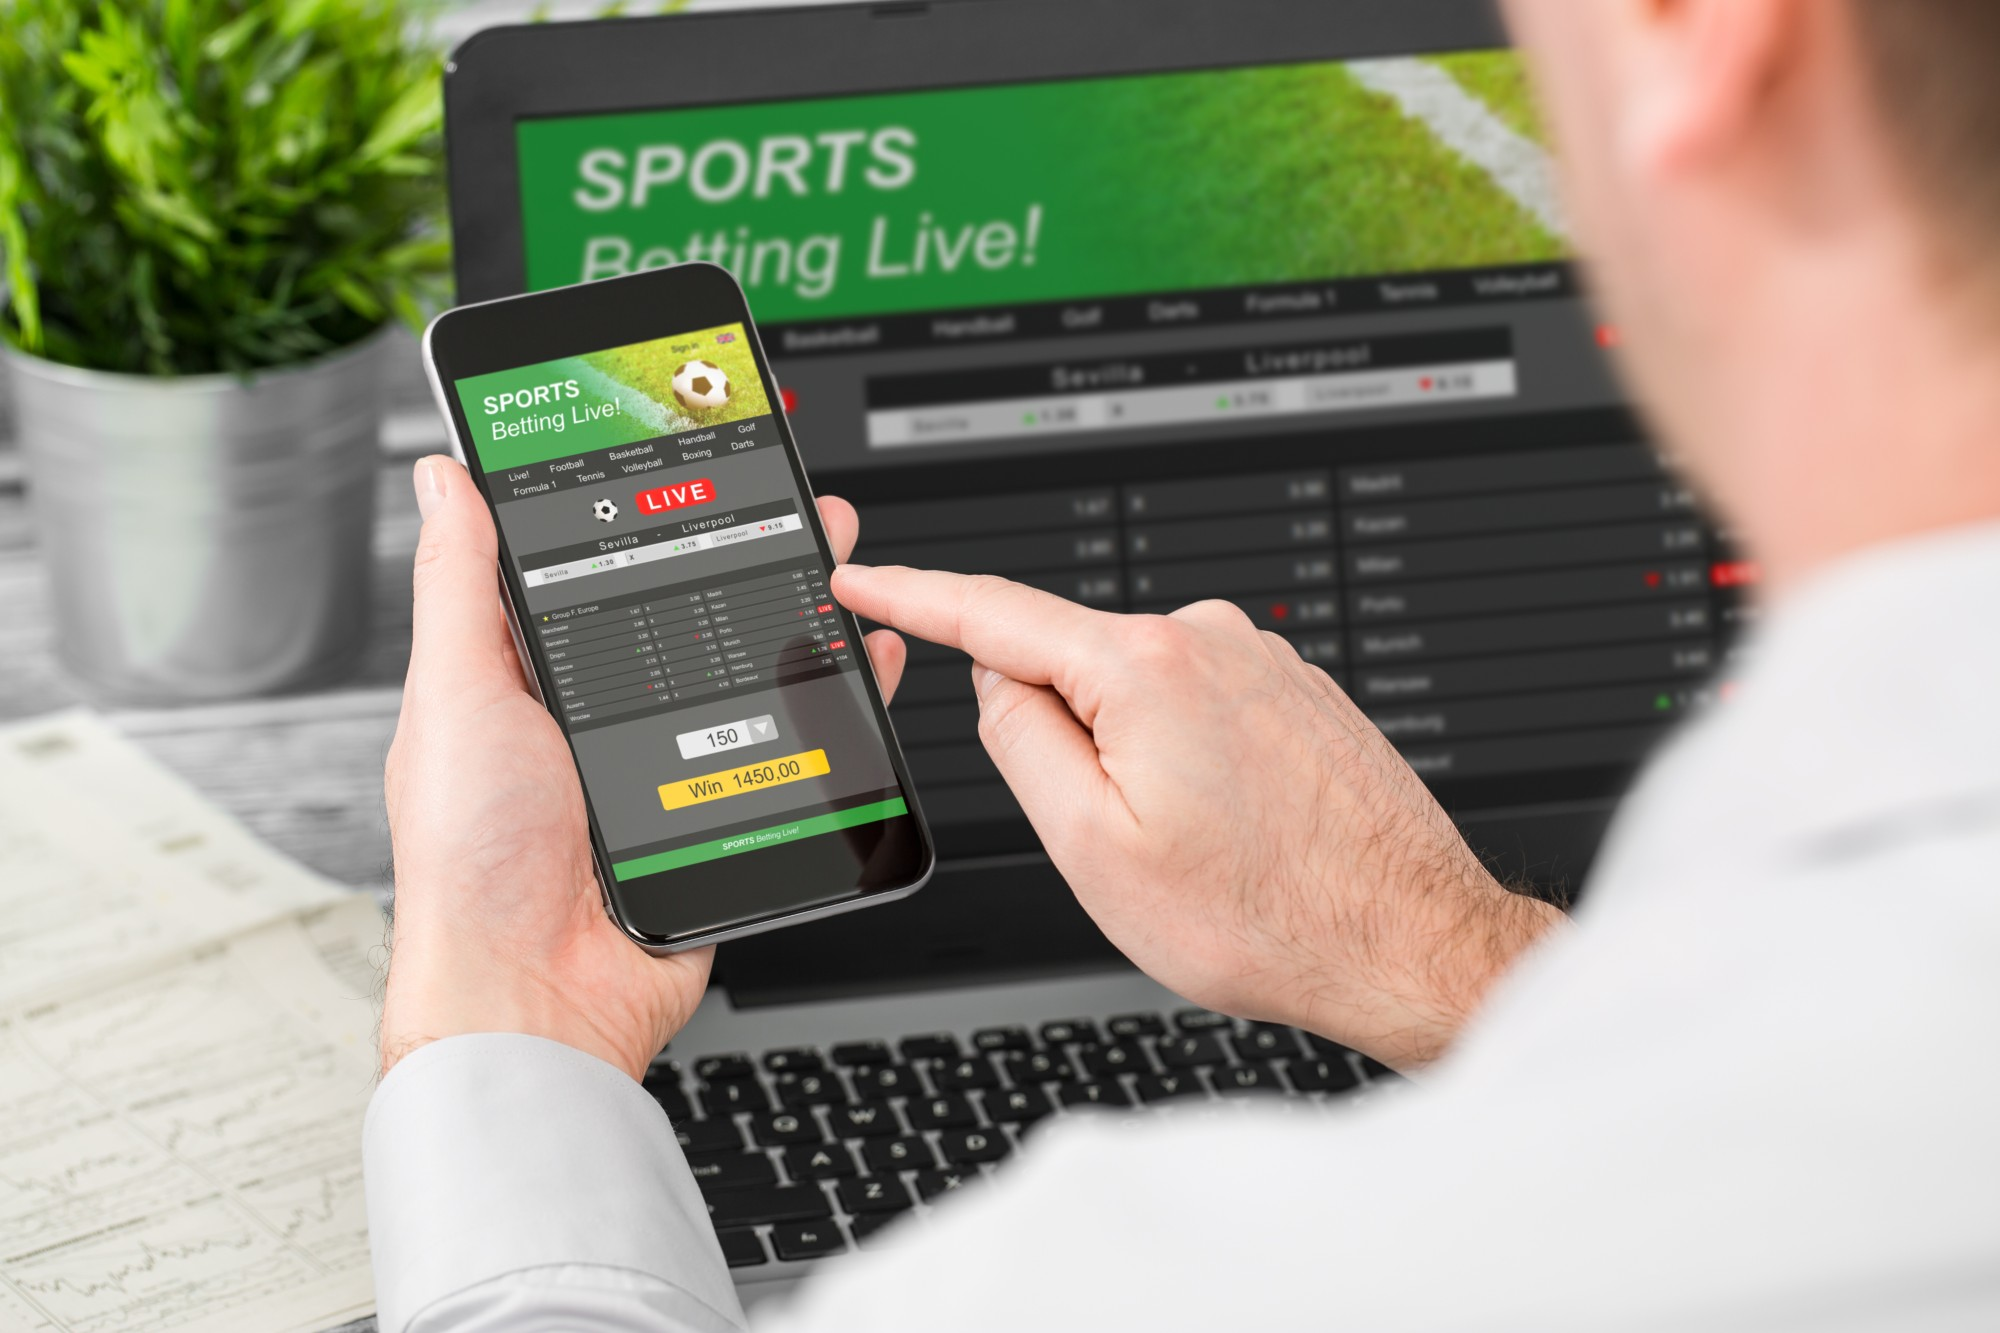 Addicted to online sports betting cryptocurrency arbitrage network videos